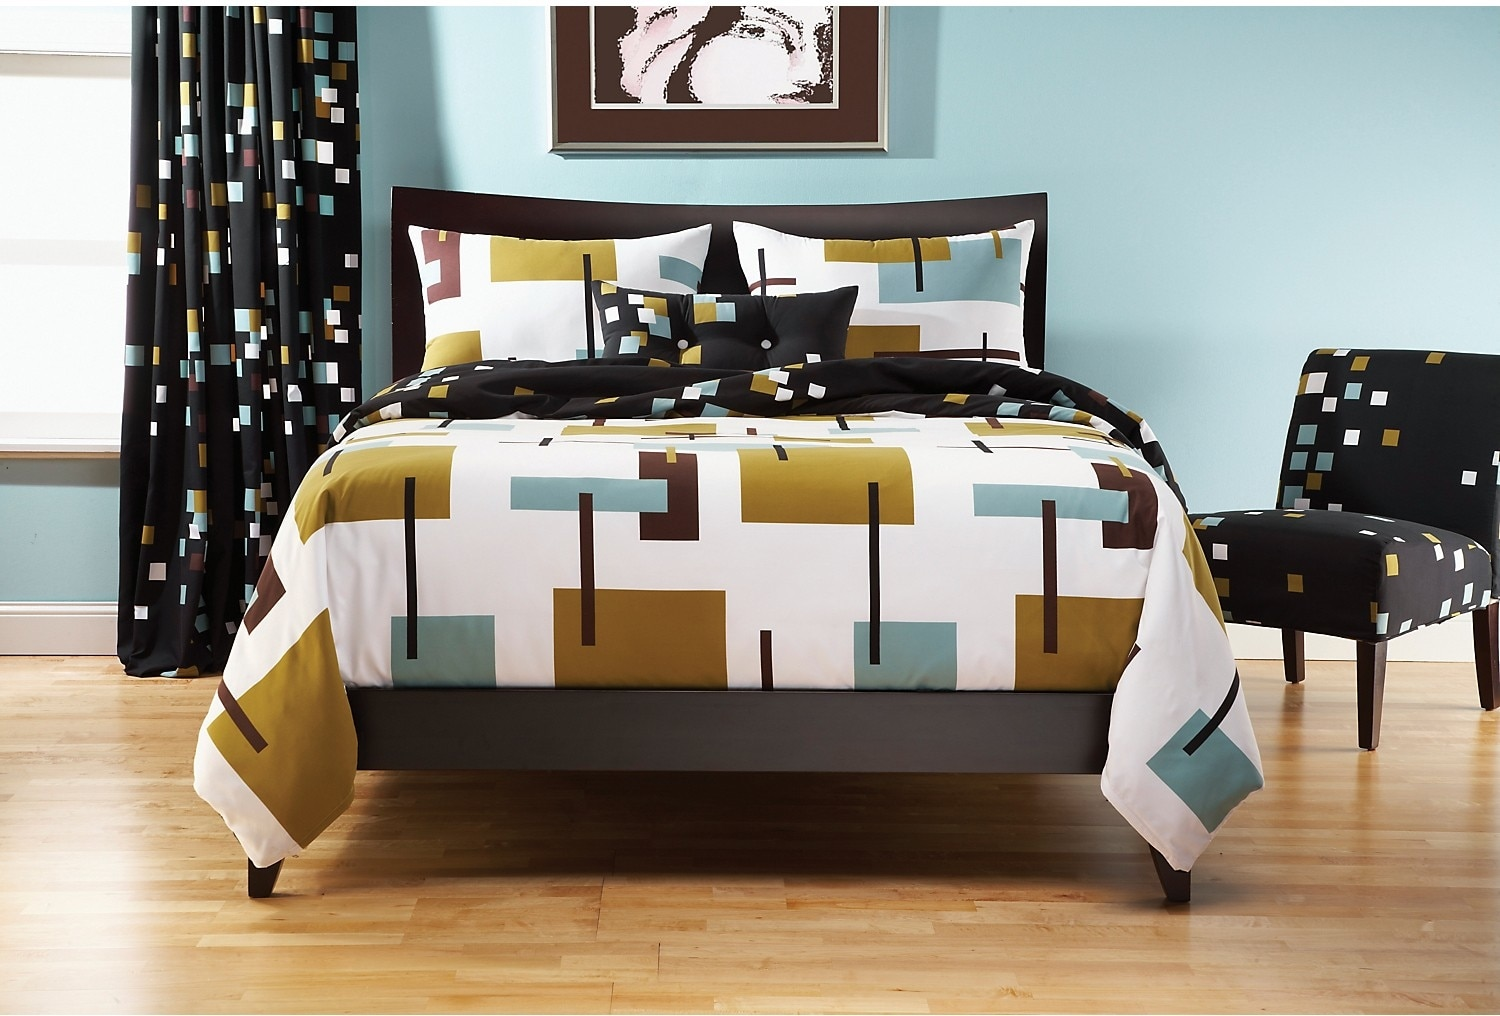 Mattresses and Bedding - Reconstruction Twin Duvet Cover Set